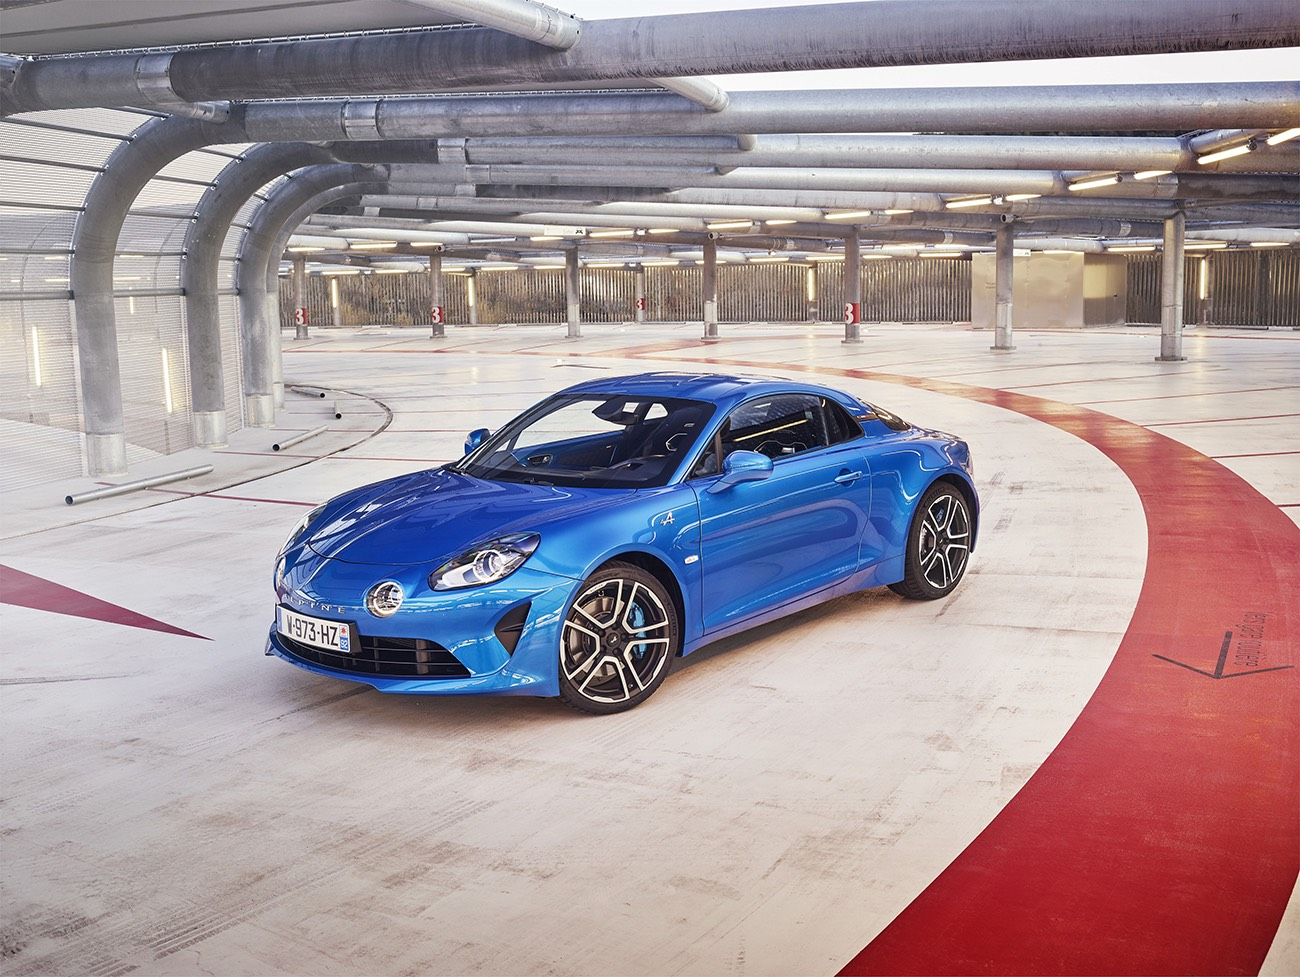 l 39 alpine a110 premi re dition tait l 39 essai aix en provence d couvrez les photographies. Black Bedroom Furniture Sets. Home Design Ideas